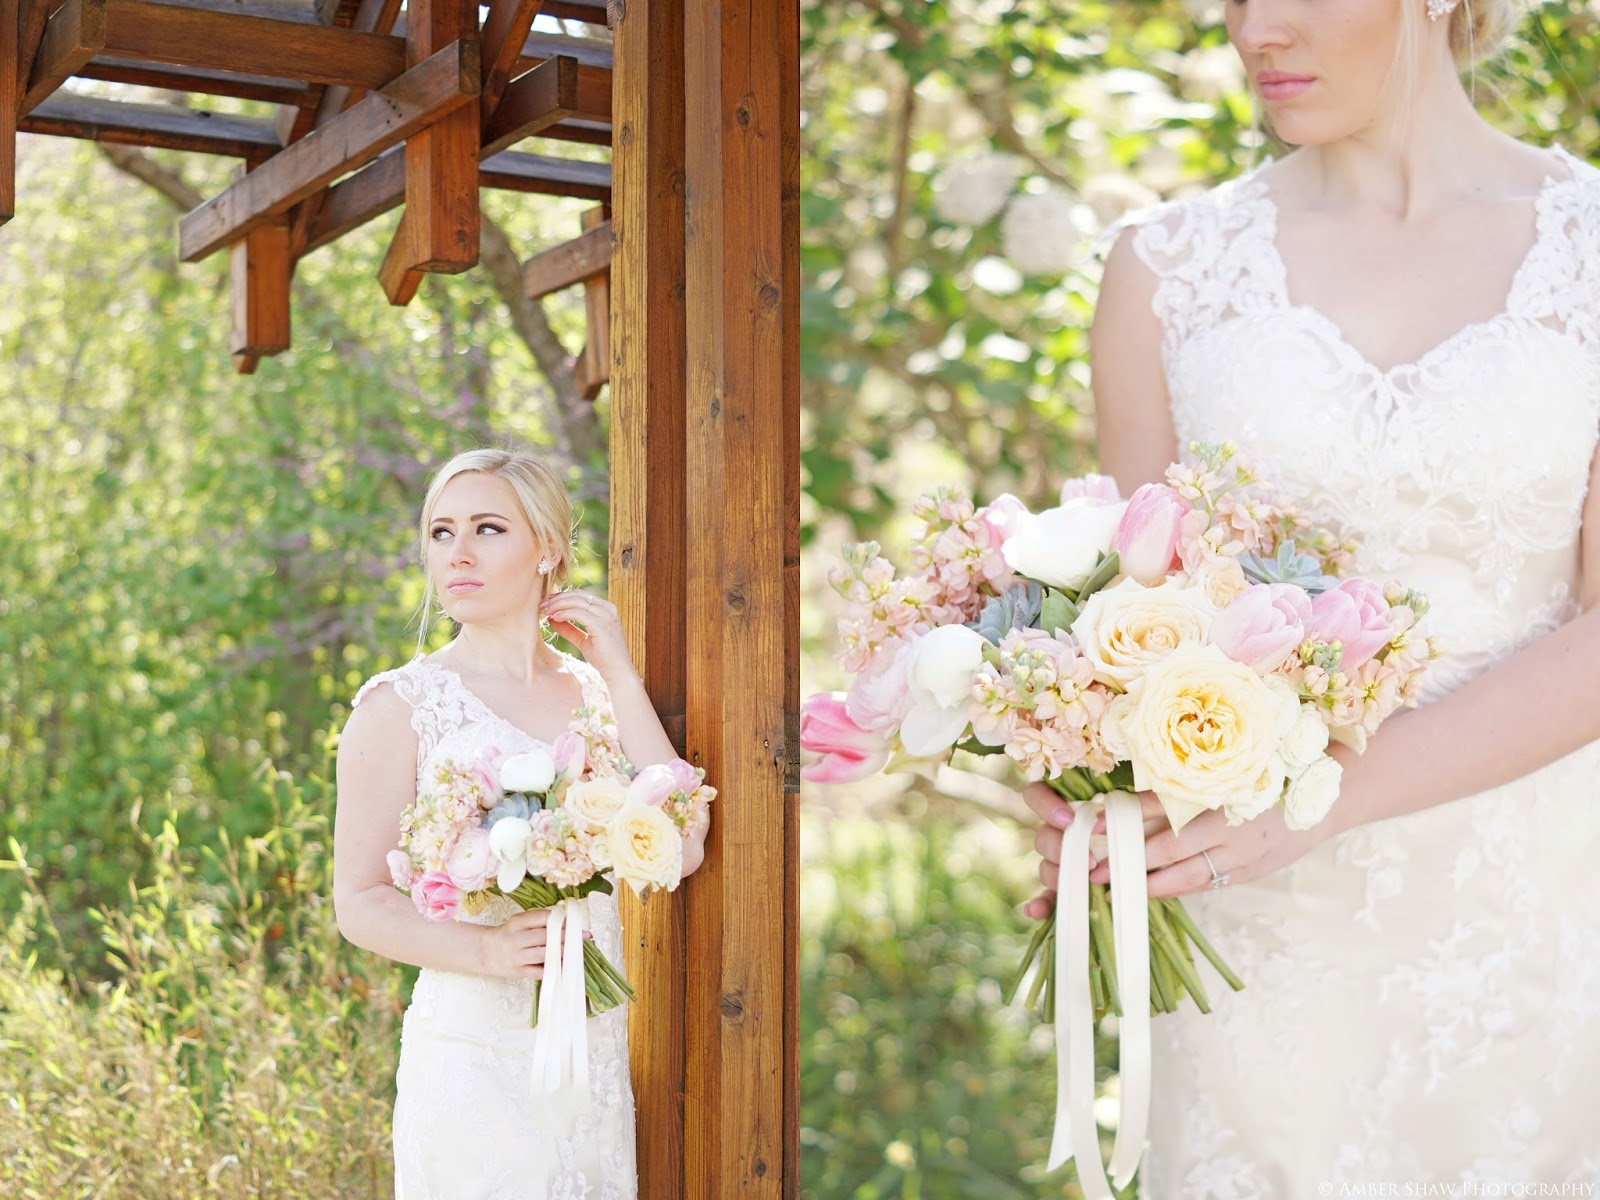 The dress garden utah - The Colors Are Absolute Perfection